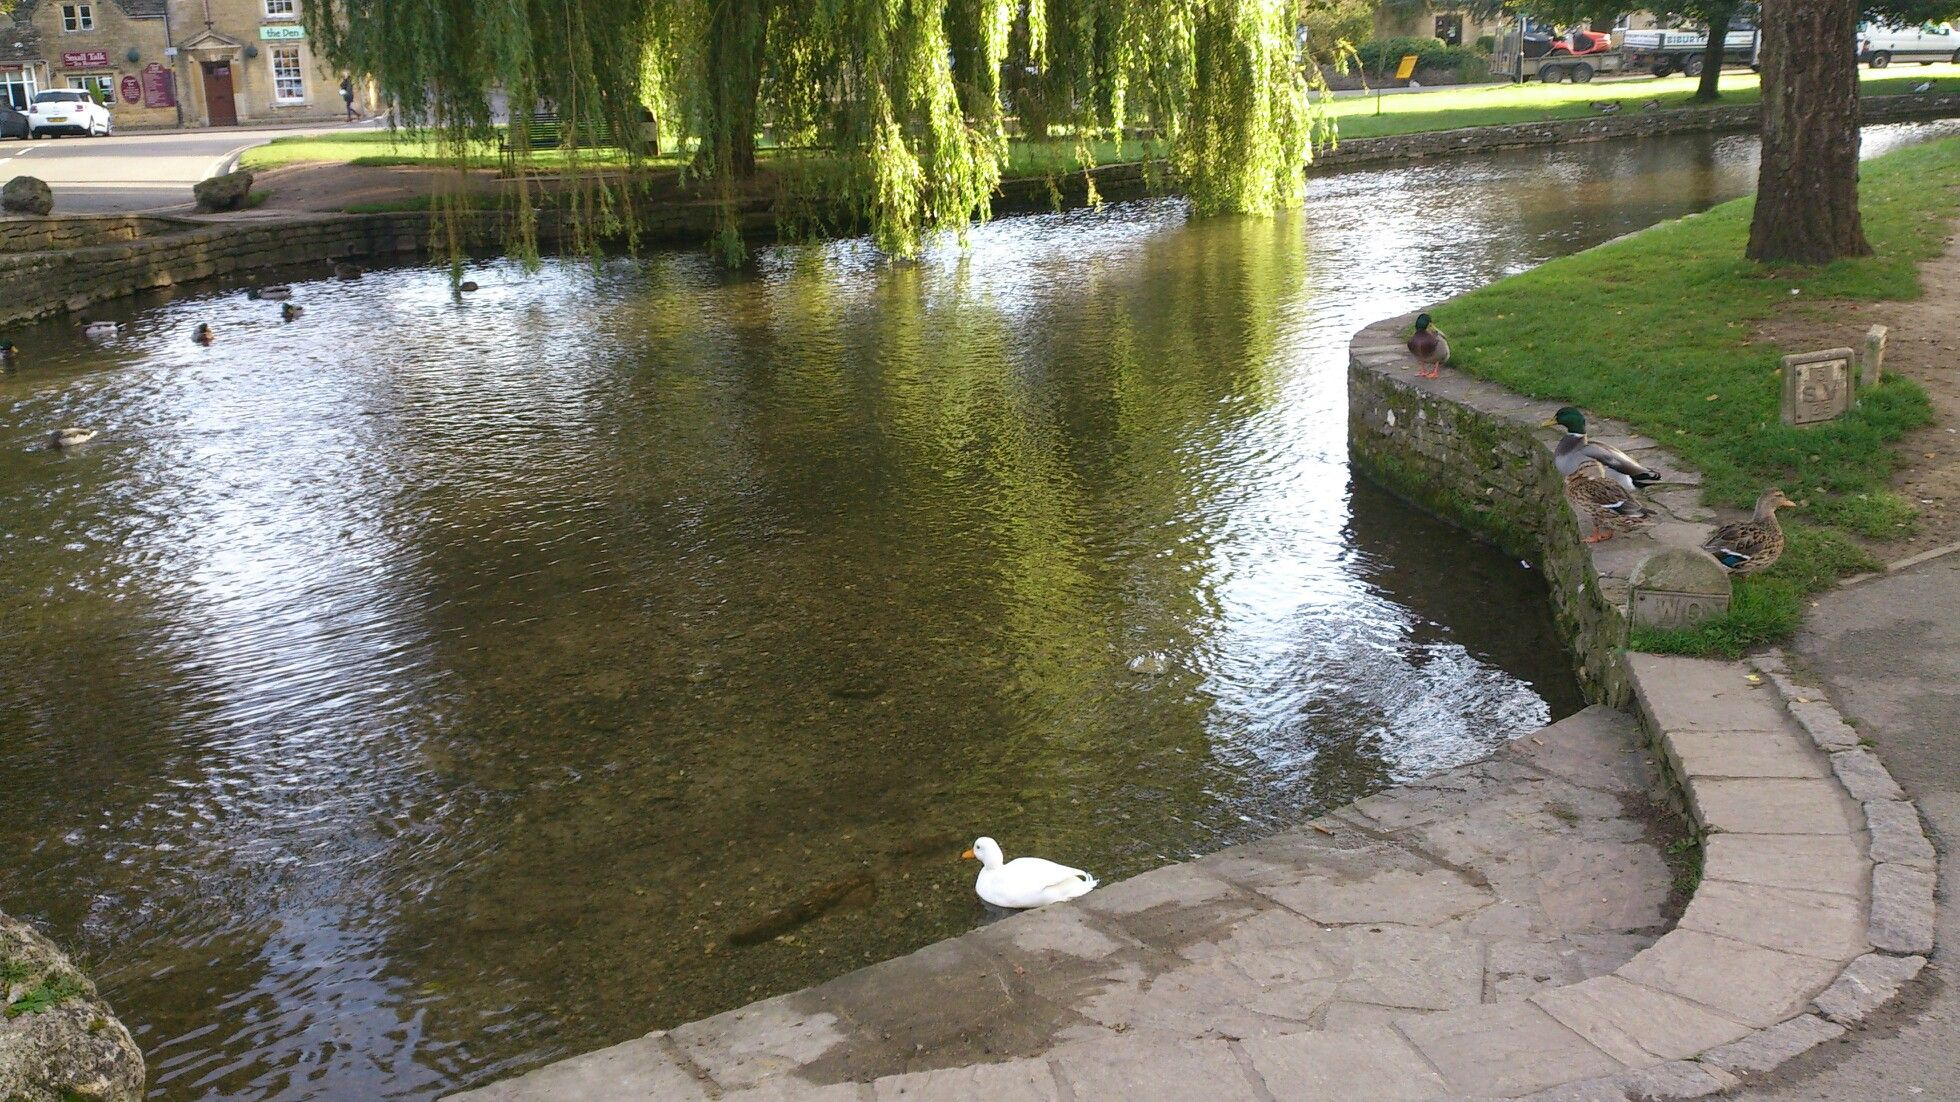 Bourton on the Water